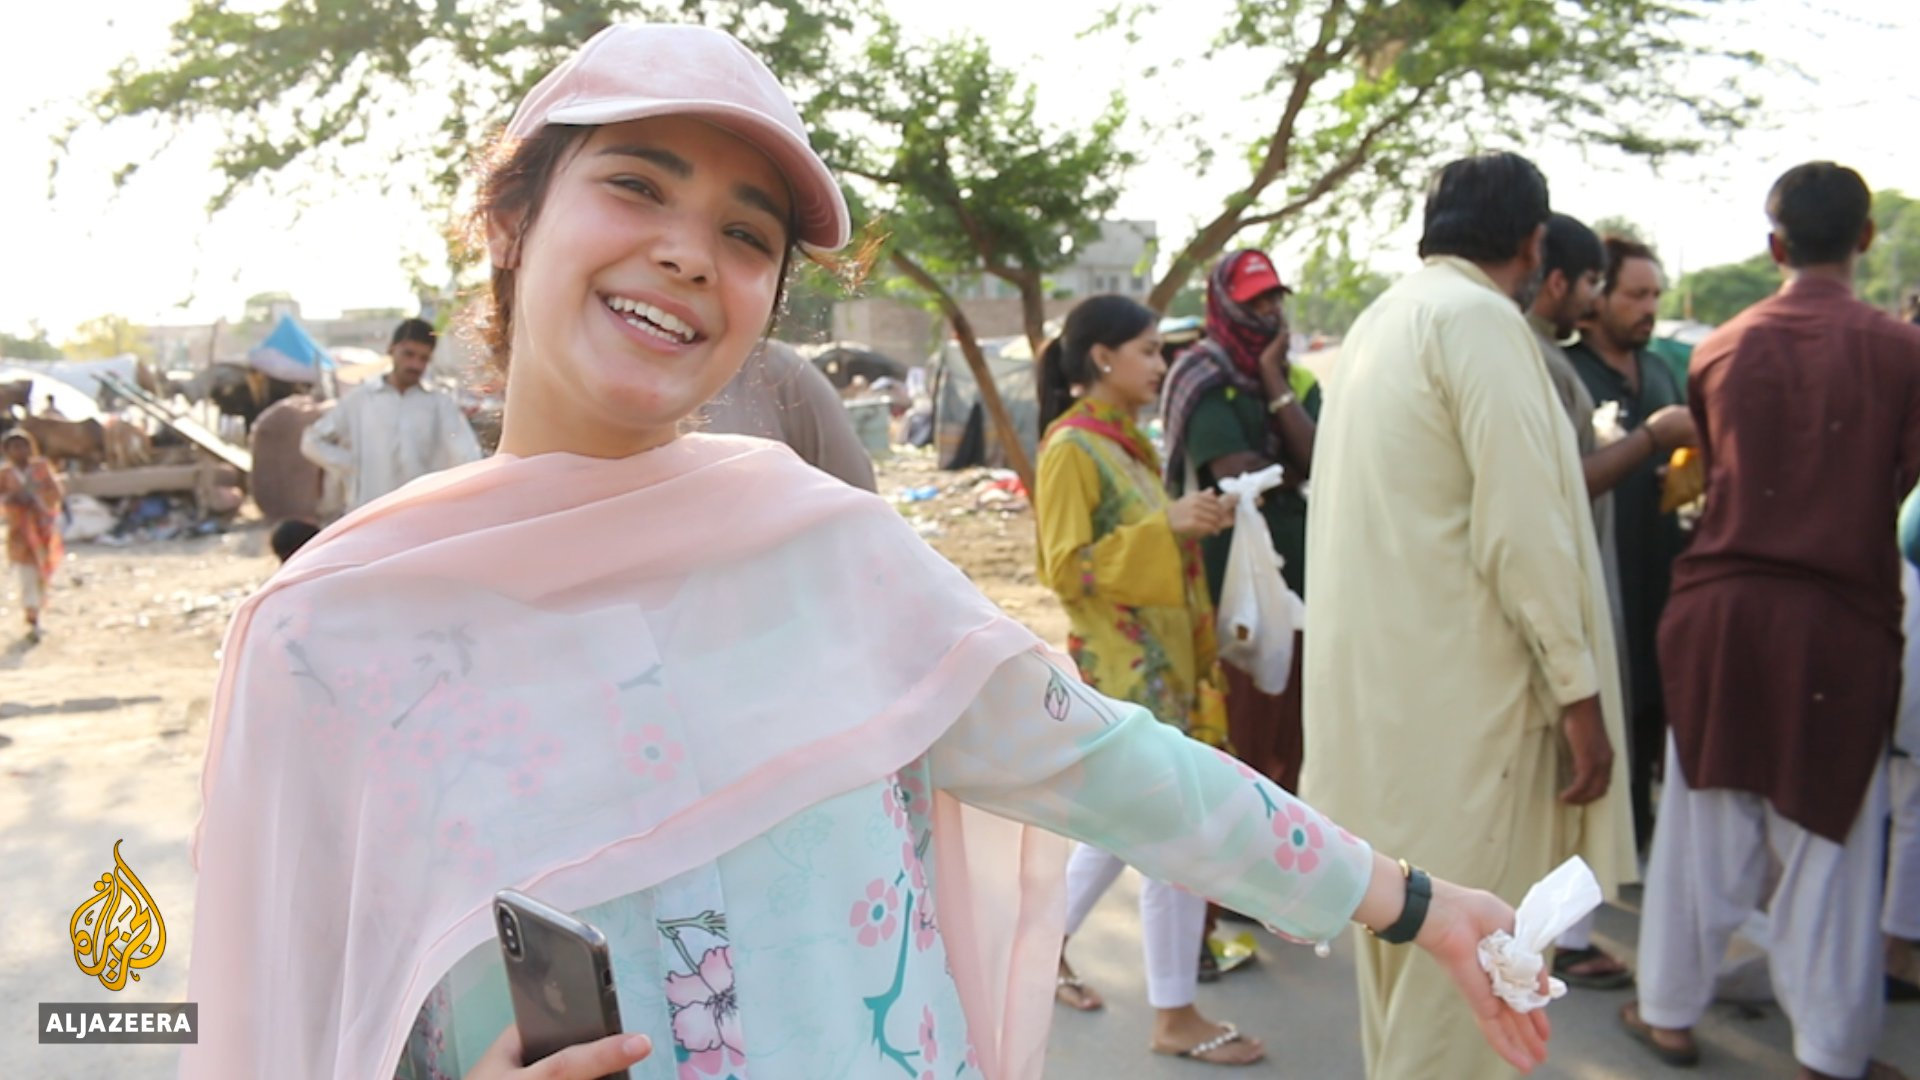 In Pakistan, tonnes of food goes to waste every year. But this woman wants to change that. https://t.co/B9ldSZq6Kc